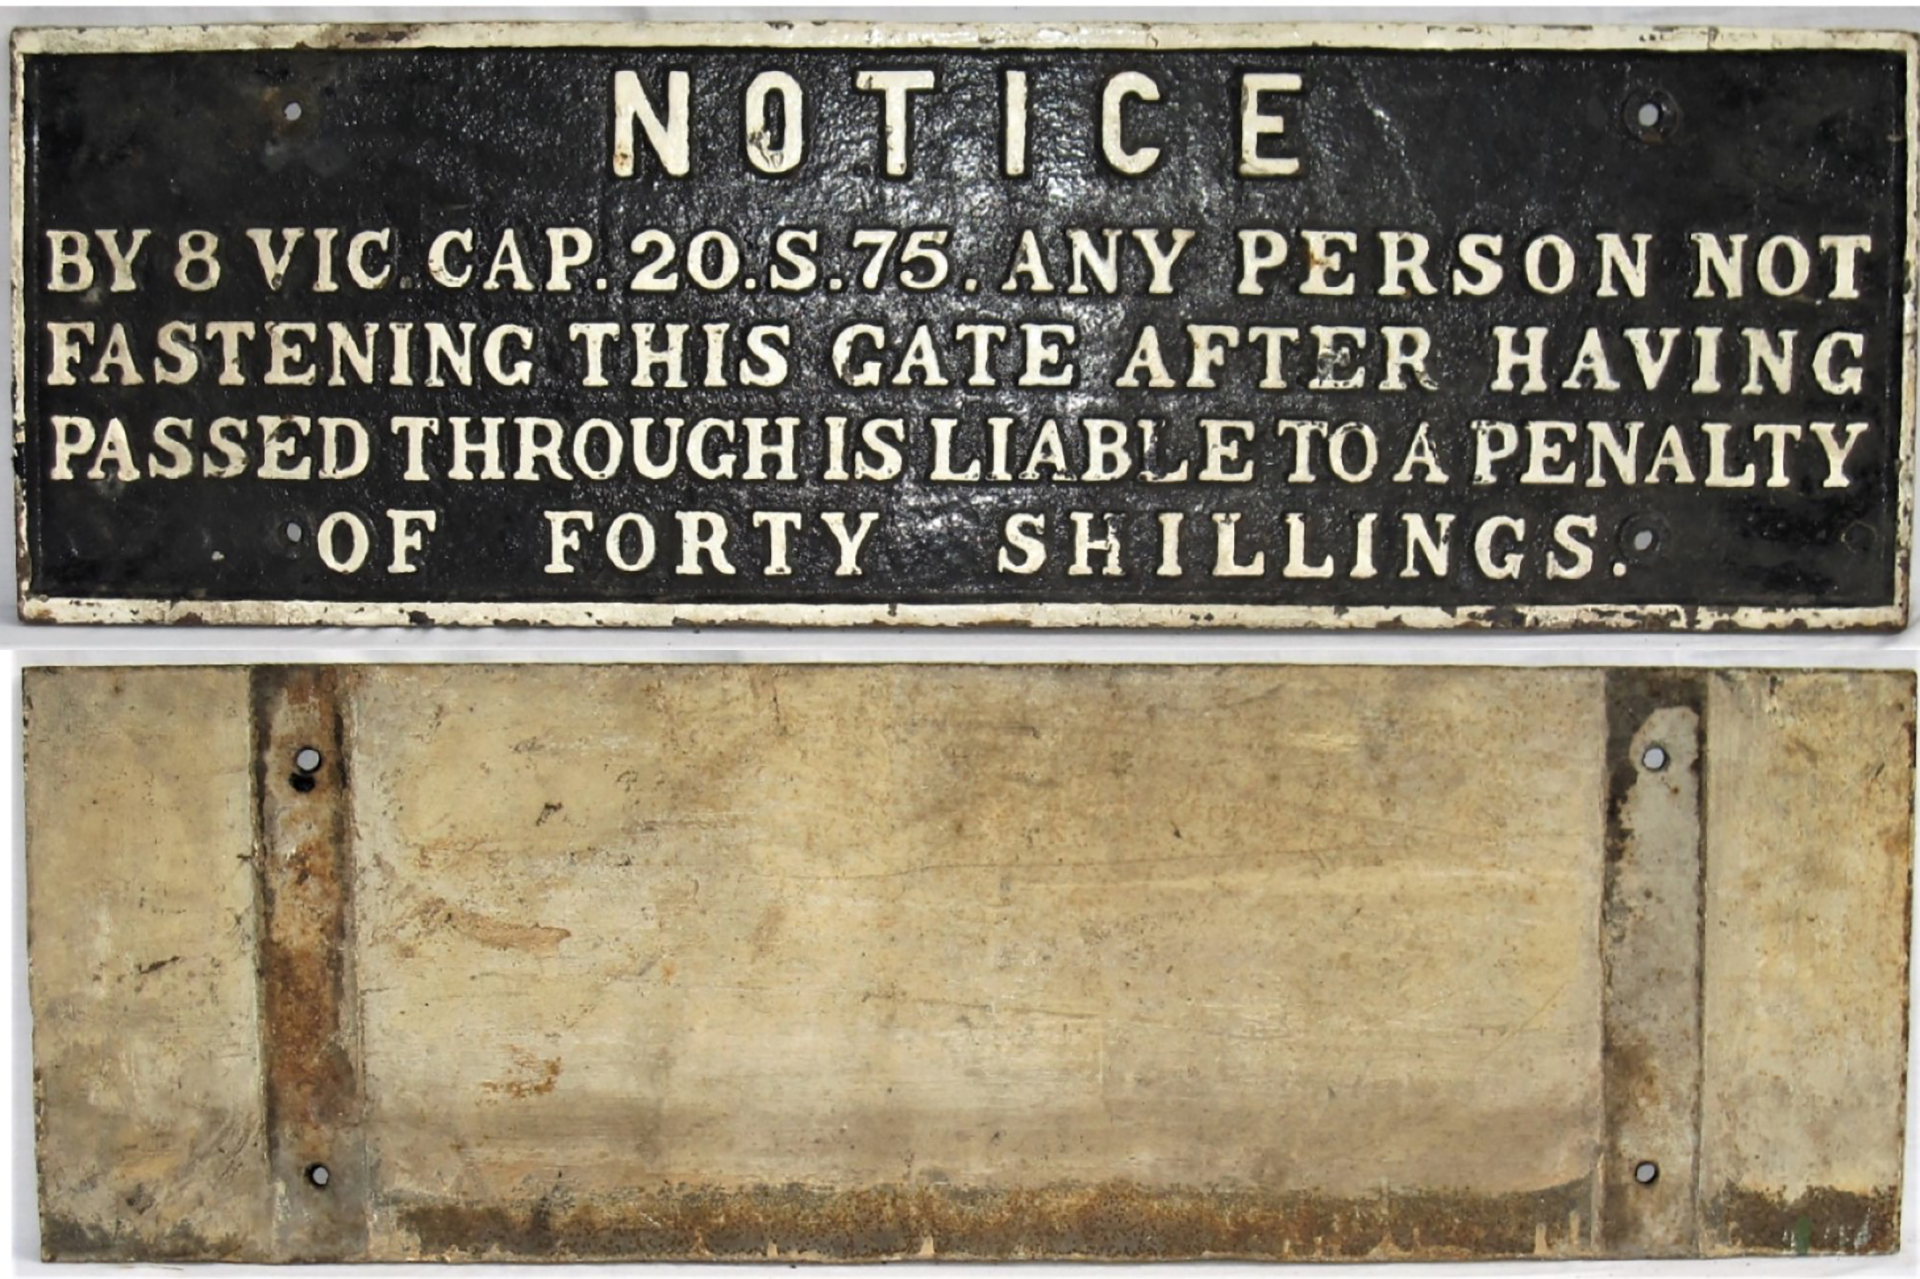 GWR Untitled Gate Notice. NOTICE BY 8 VIC 20.S.75